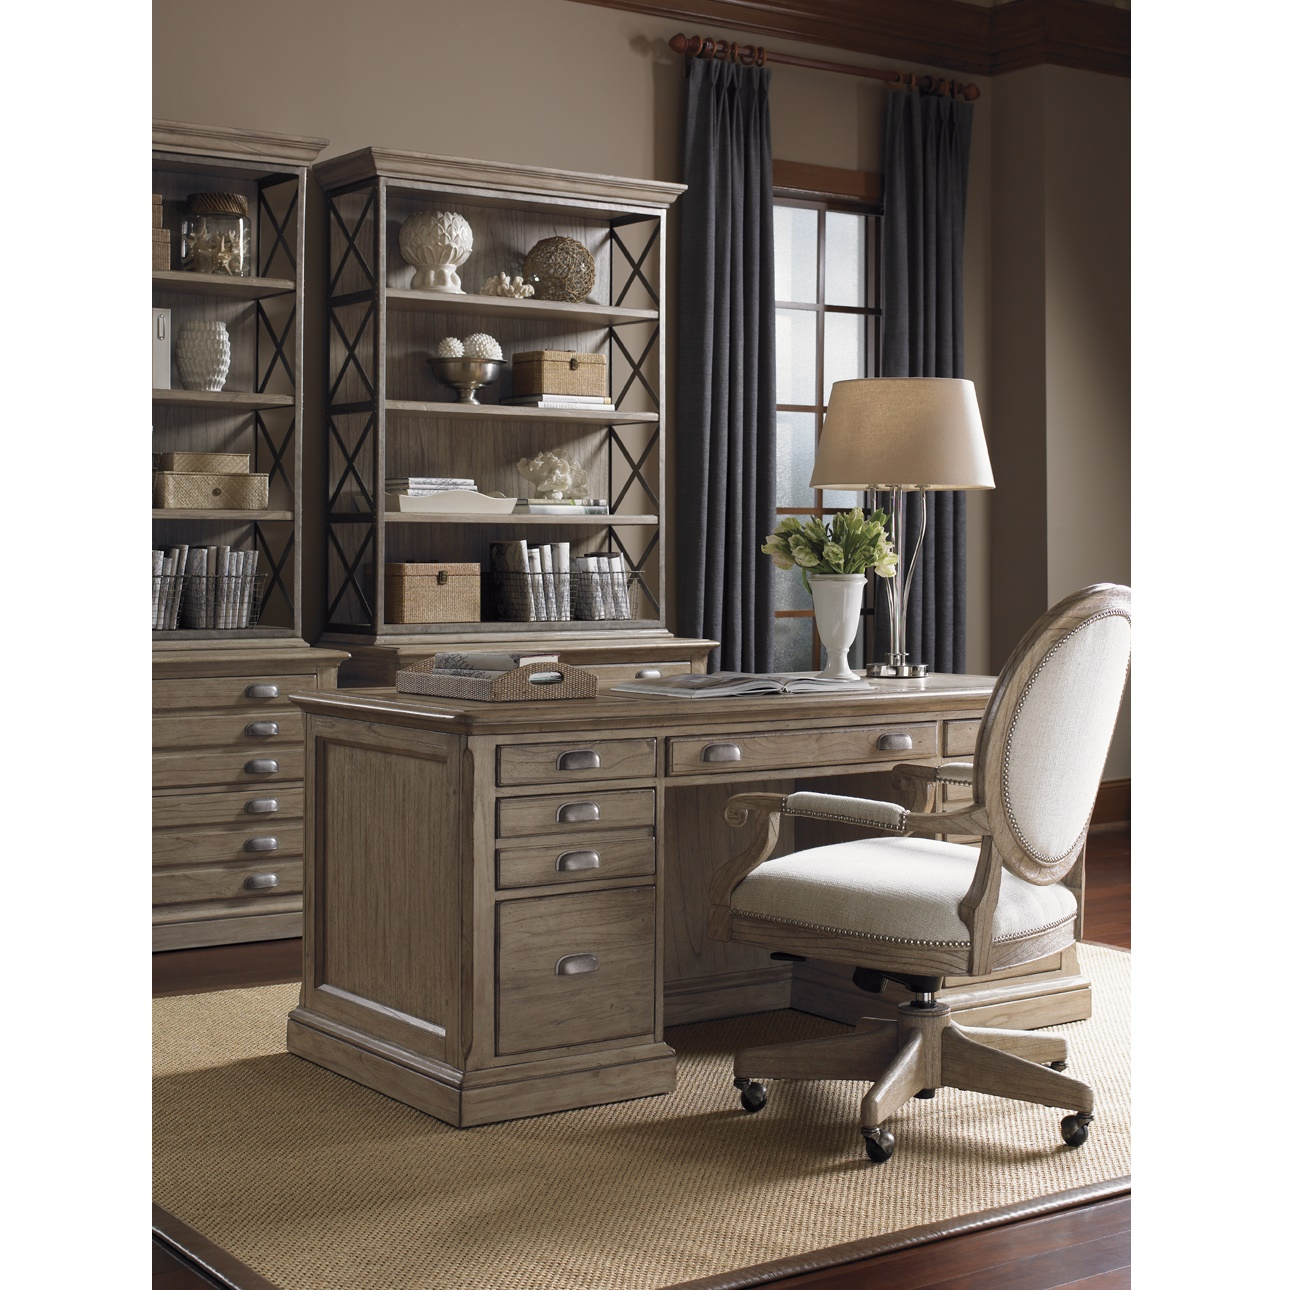 Lexington Home Brands Desk Brooklyn New York